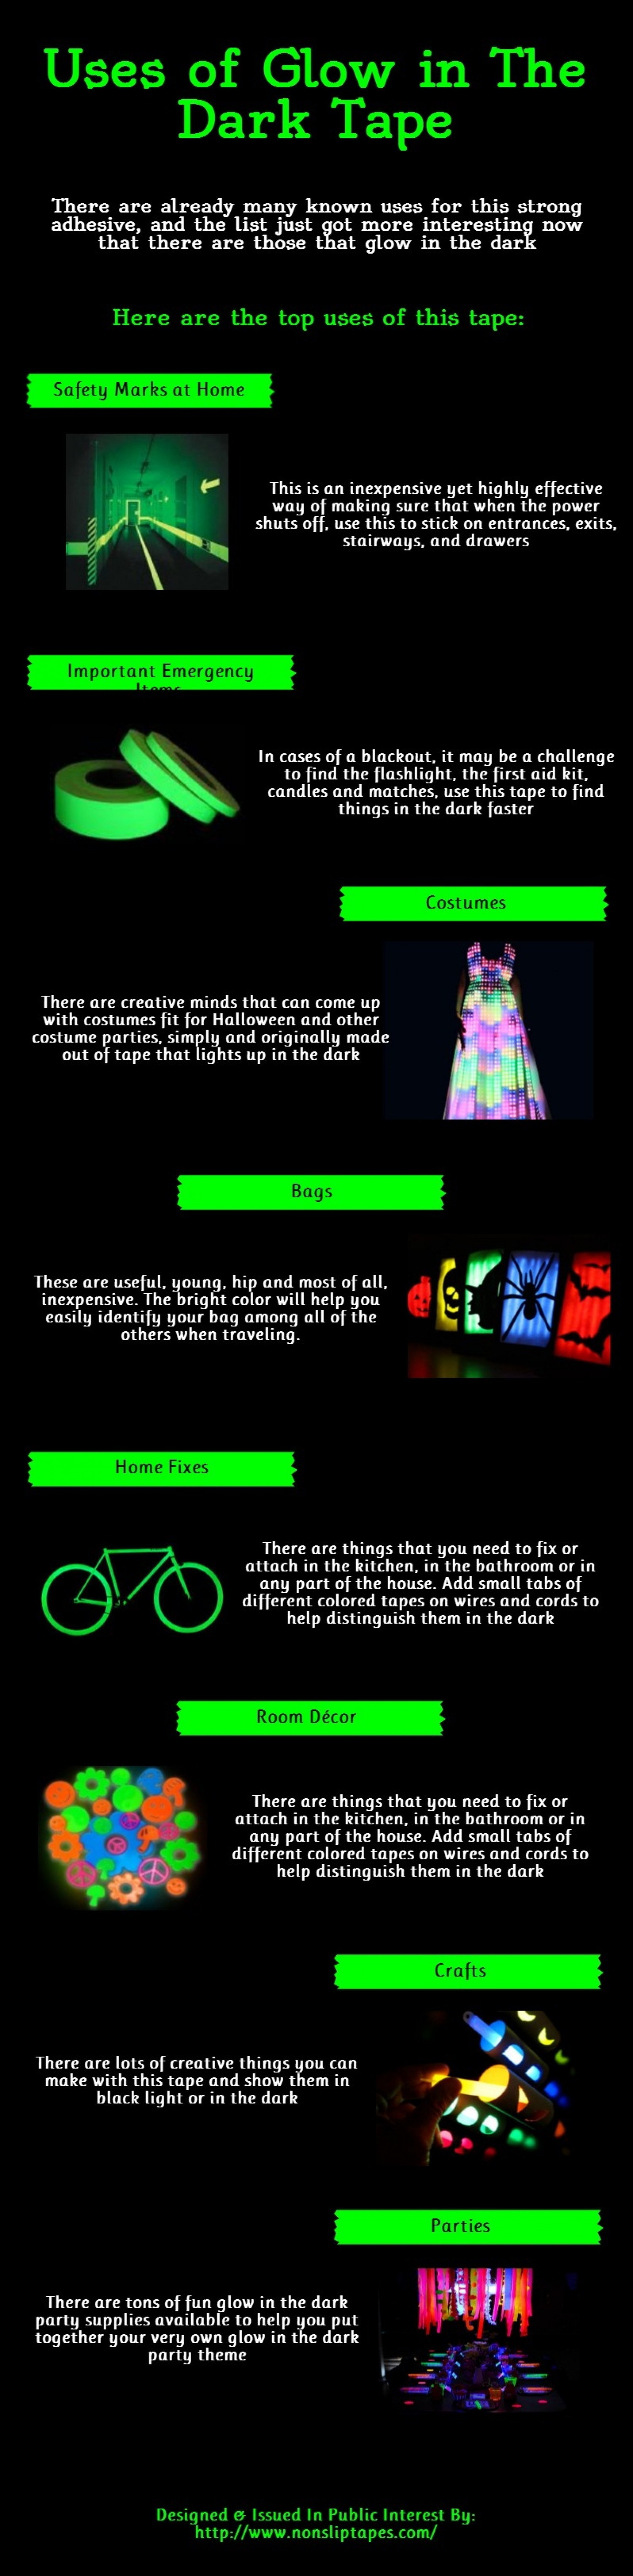 Uses of Glow in the Dark Tape Infographic